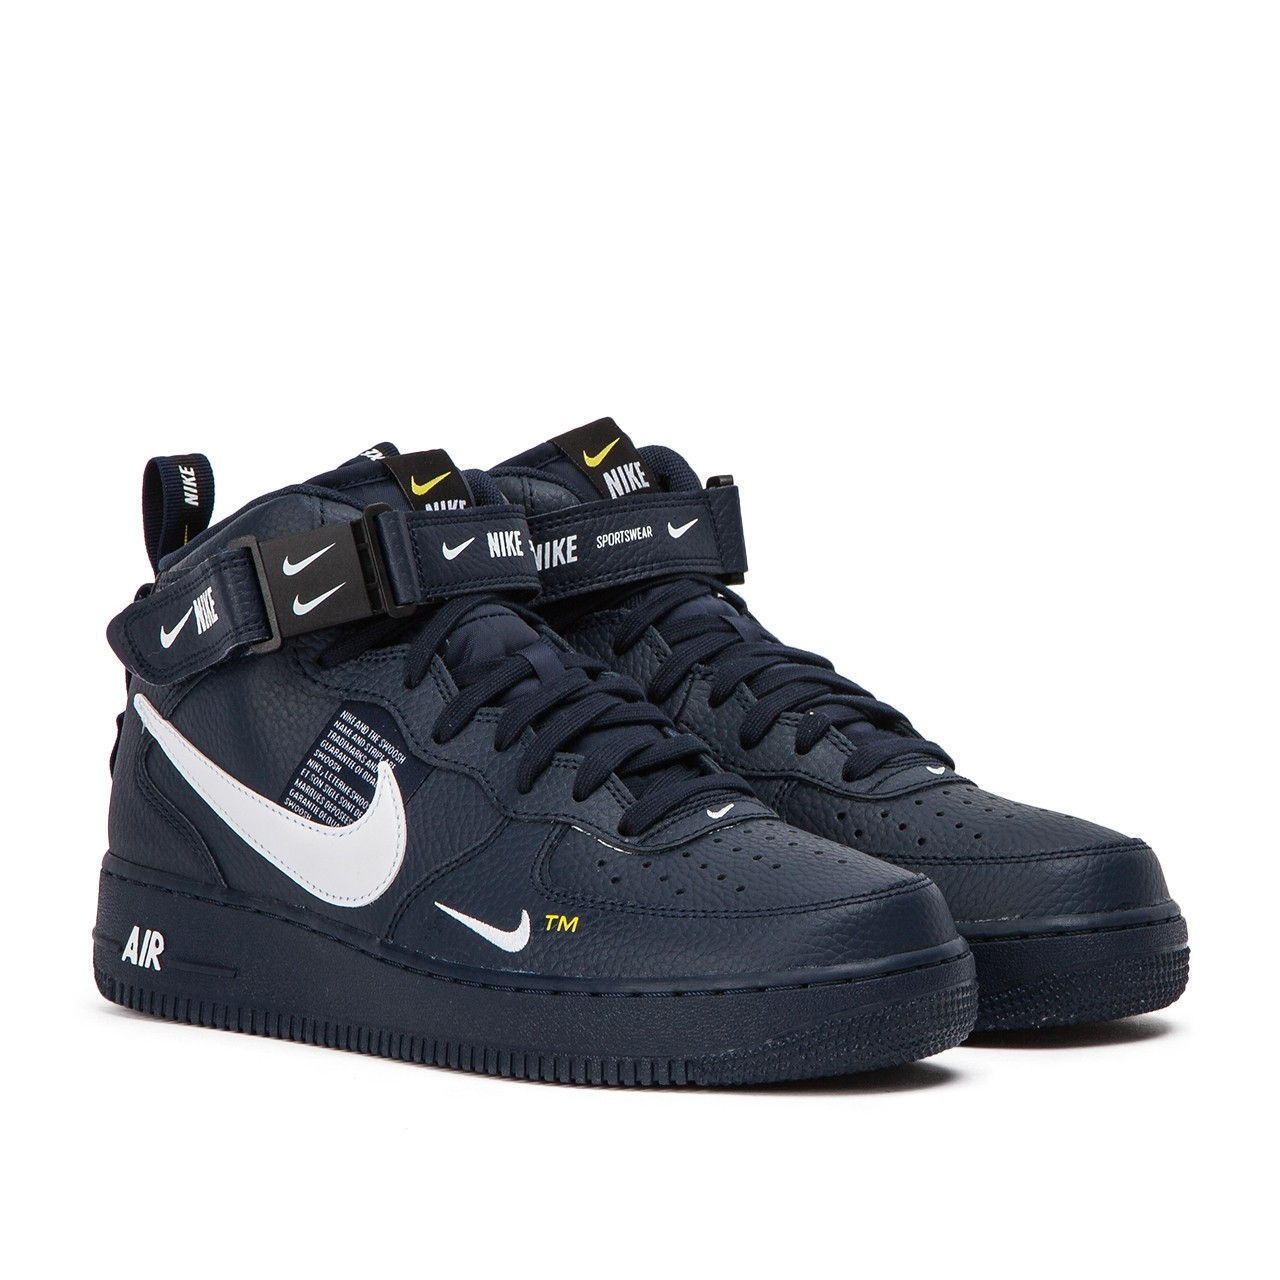 78c7789c1 Nike Air Force 1 Mid '07 Utility Navy | Pro Basketball